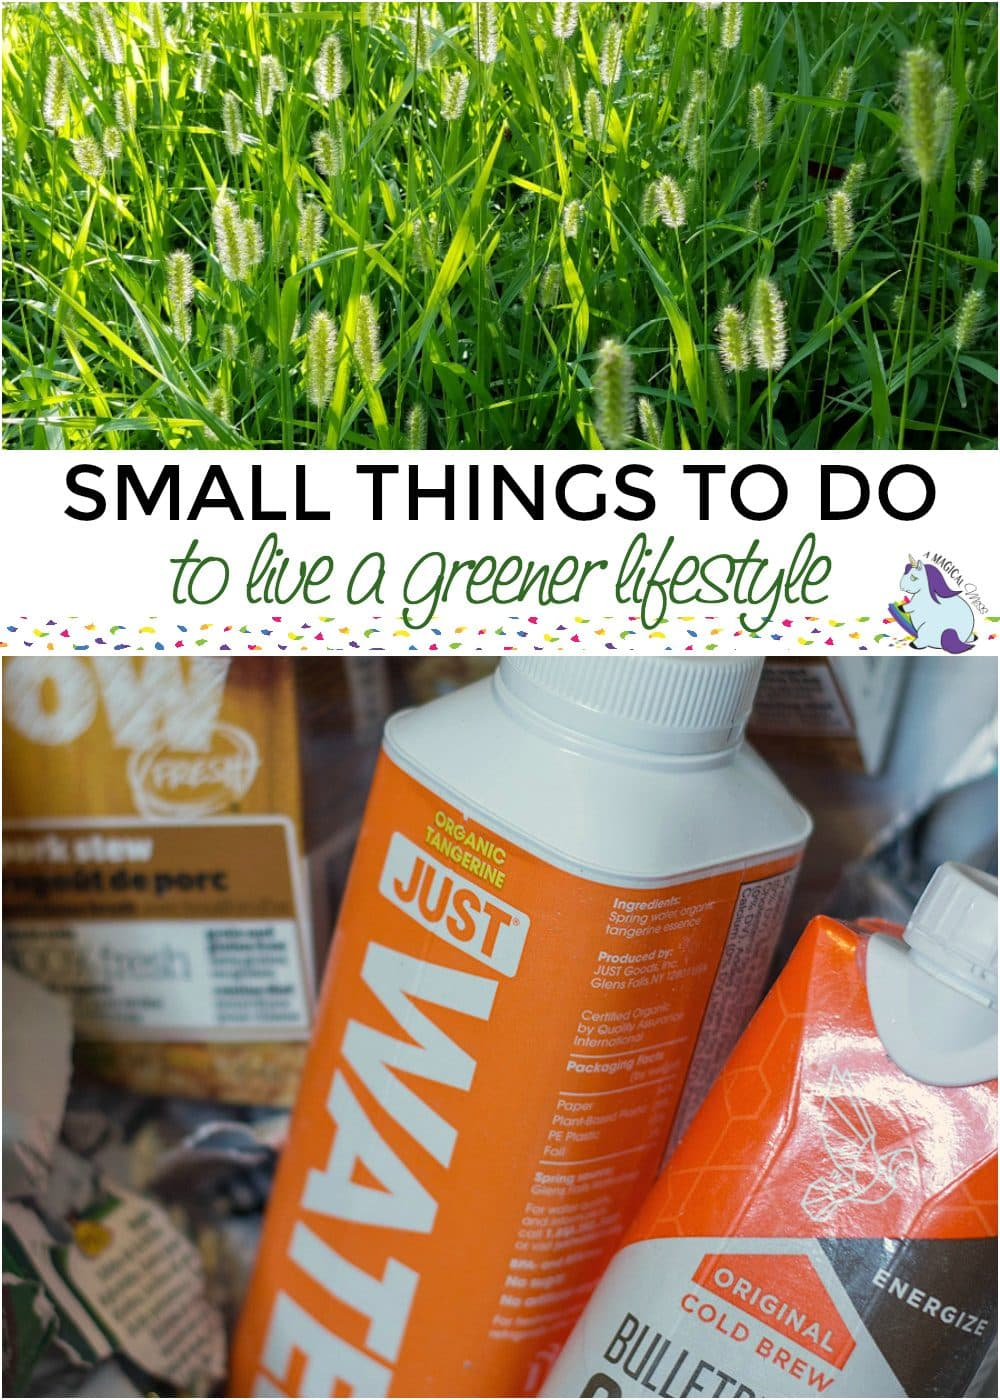 Small Things to do to Live a Greener Lifestyle